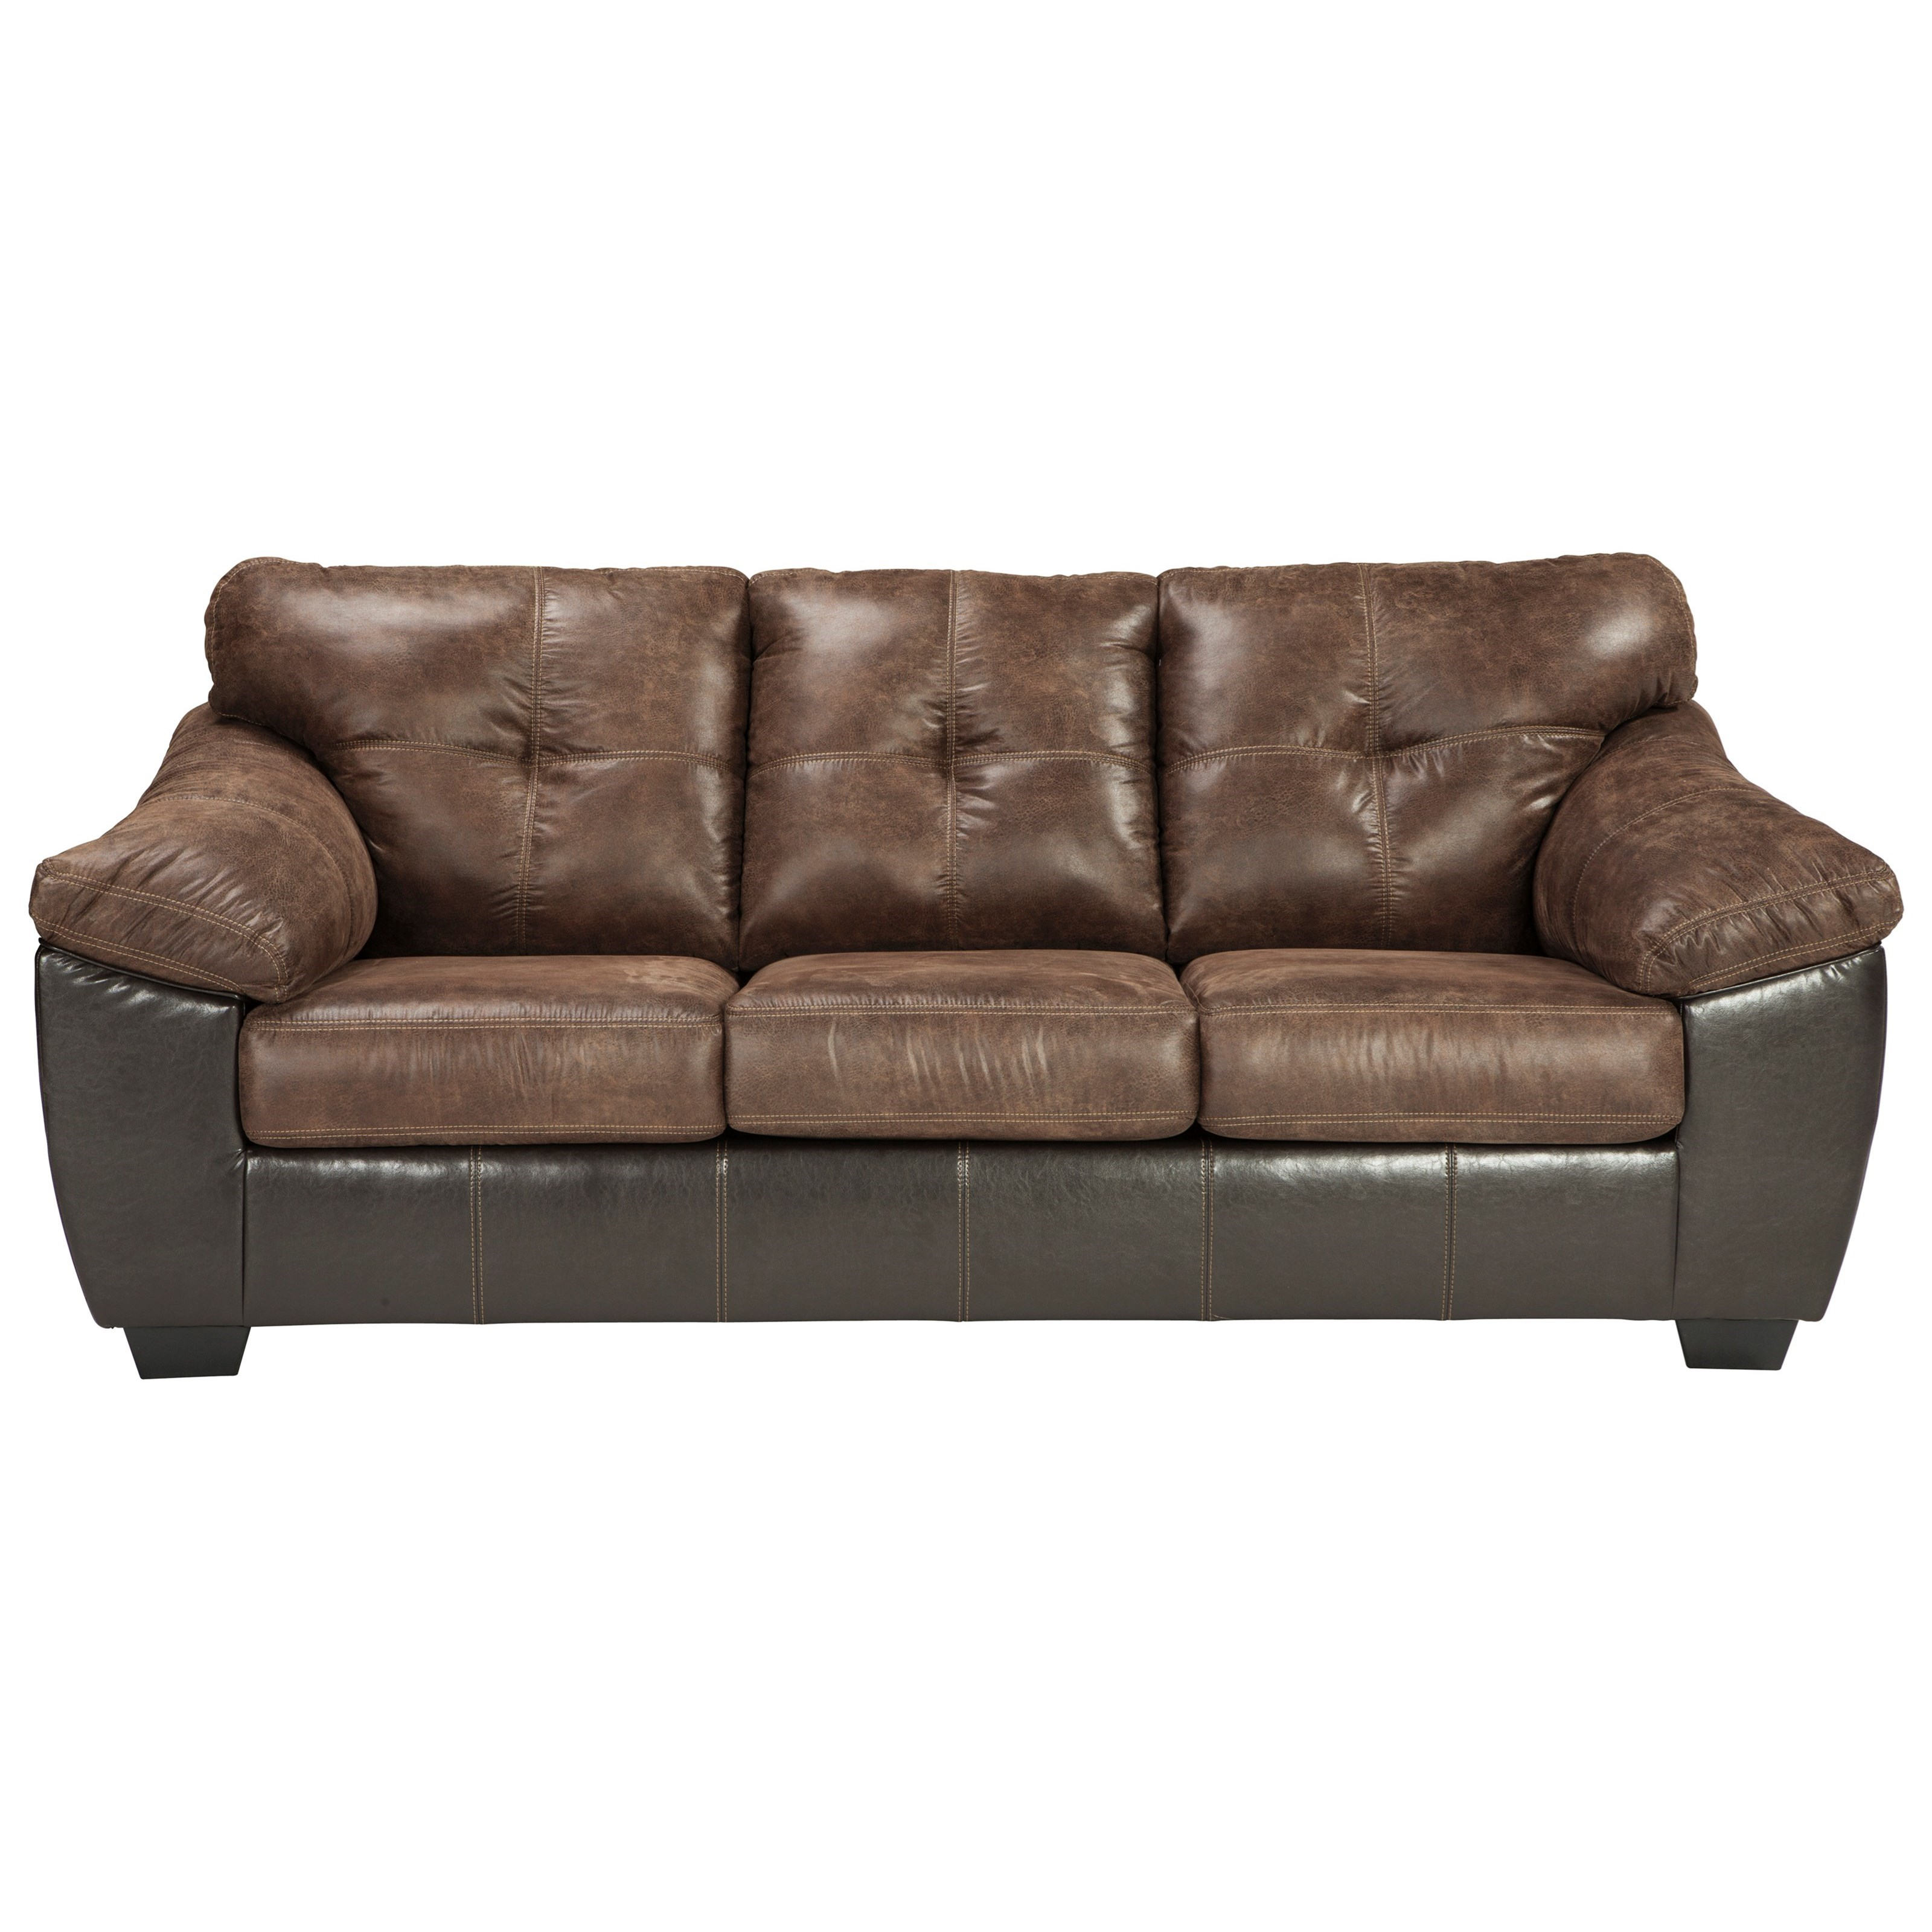 Two Tone Faux Leather Queen Sofa Sleeper With Memory Foam